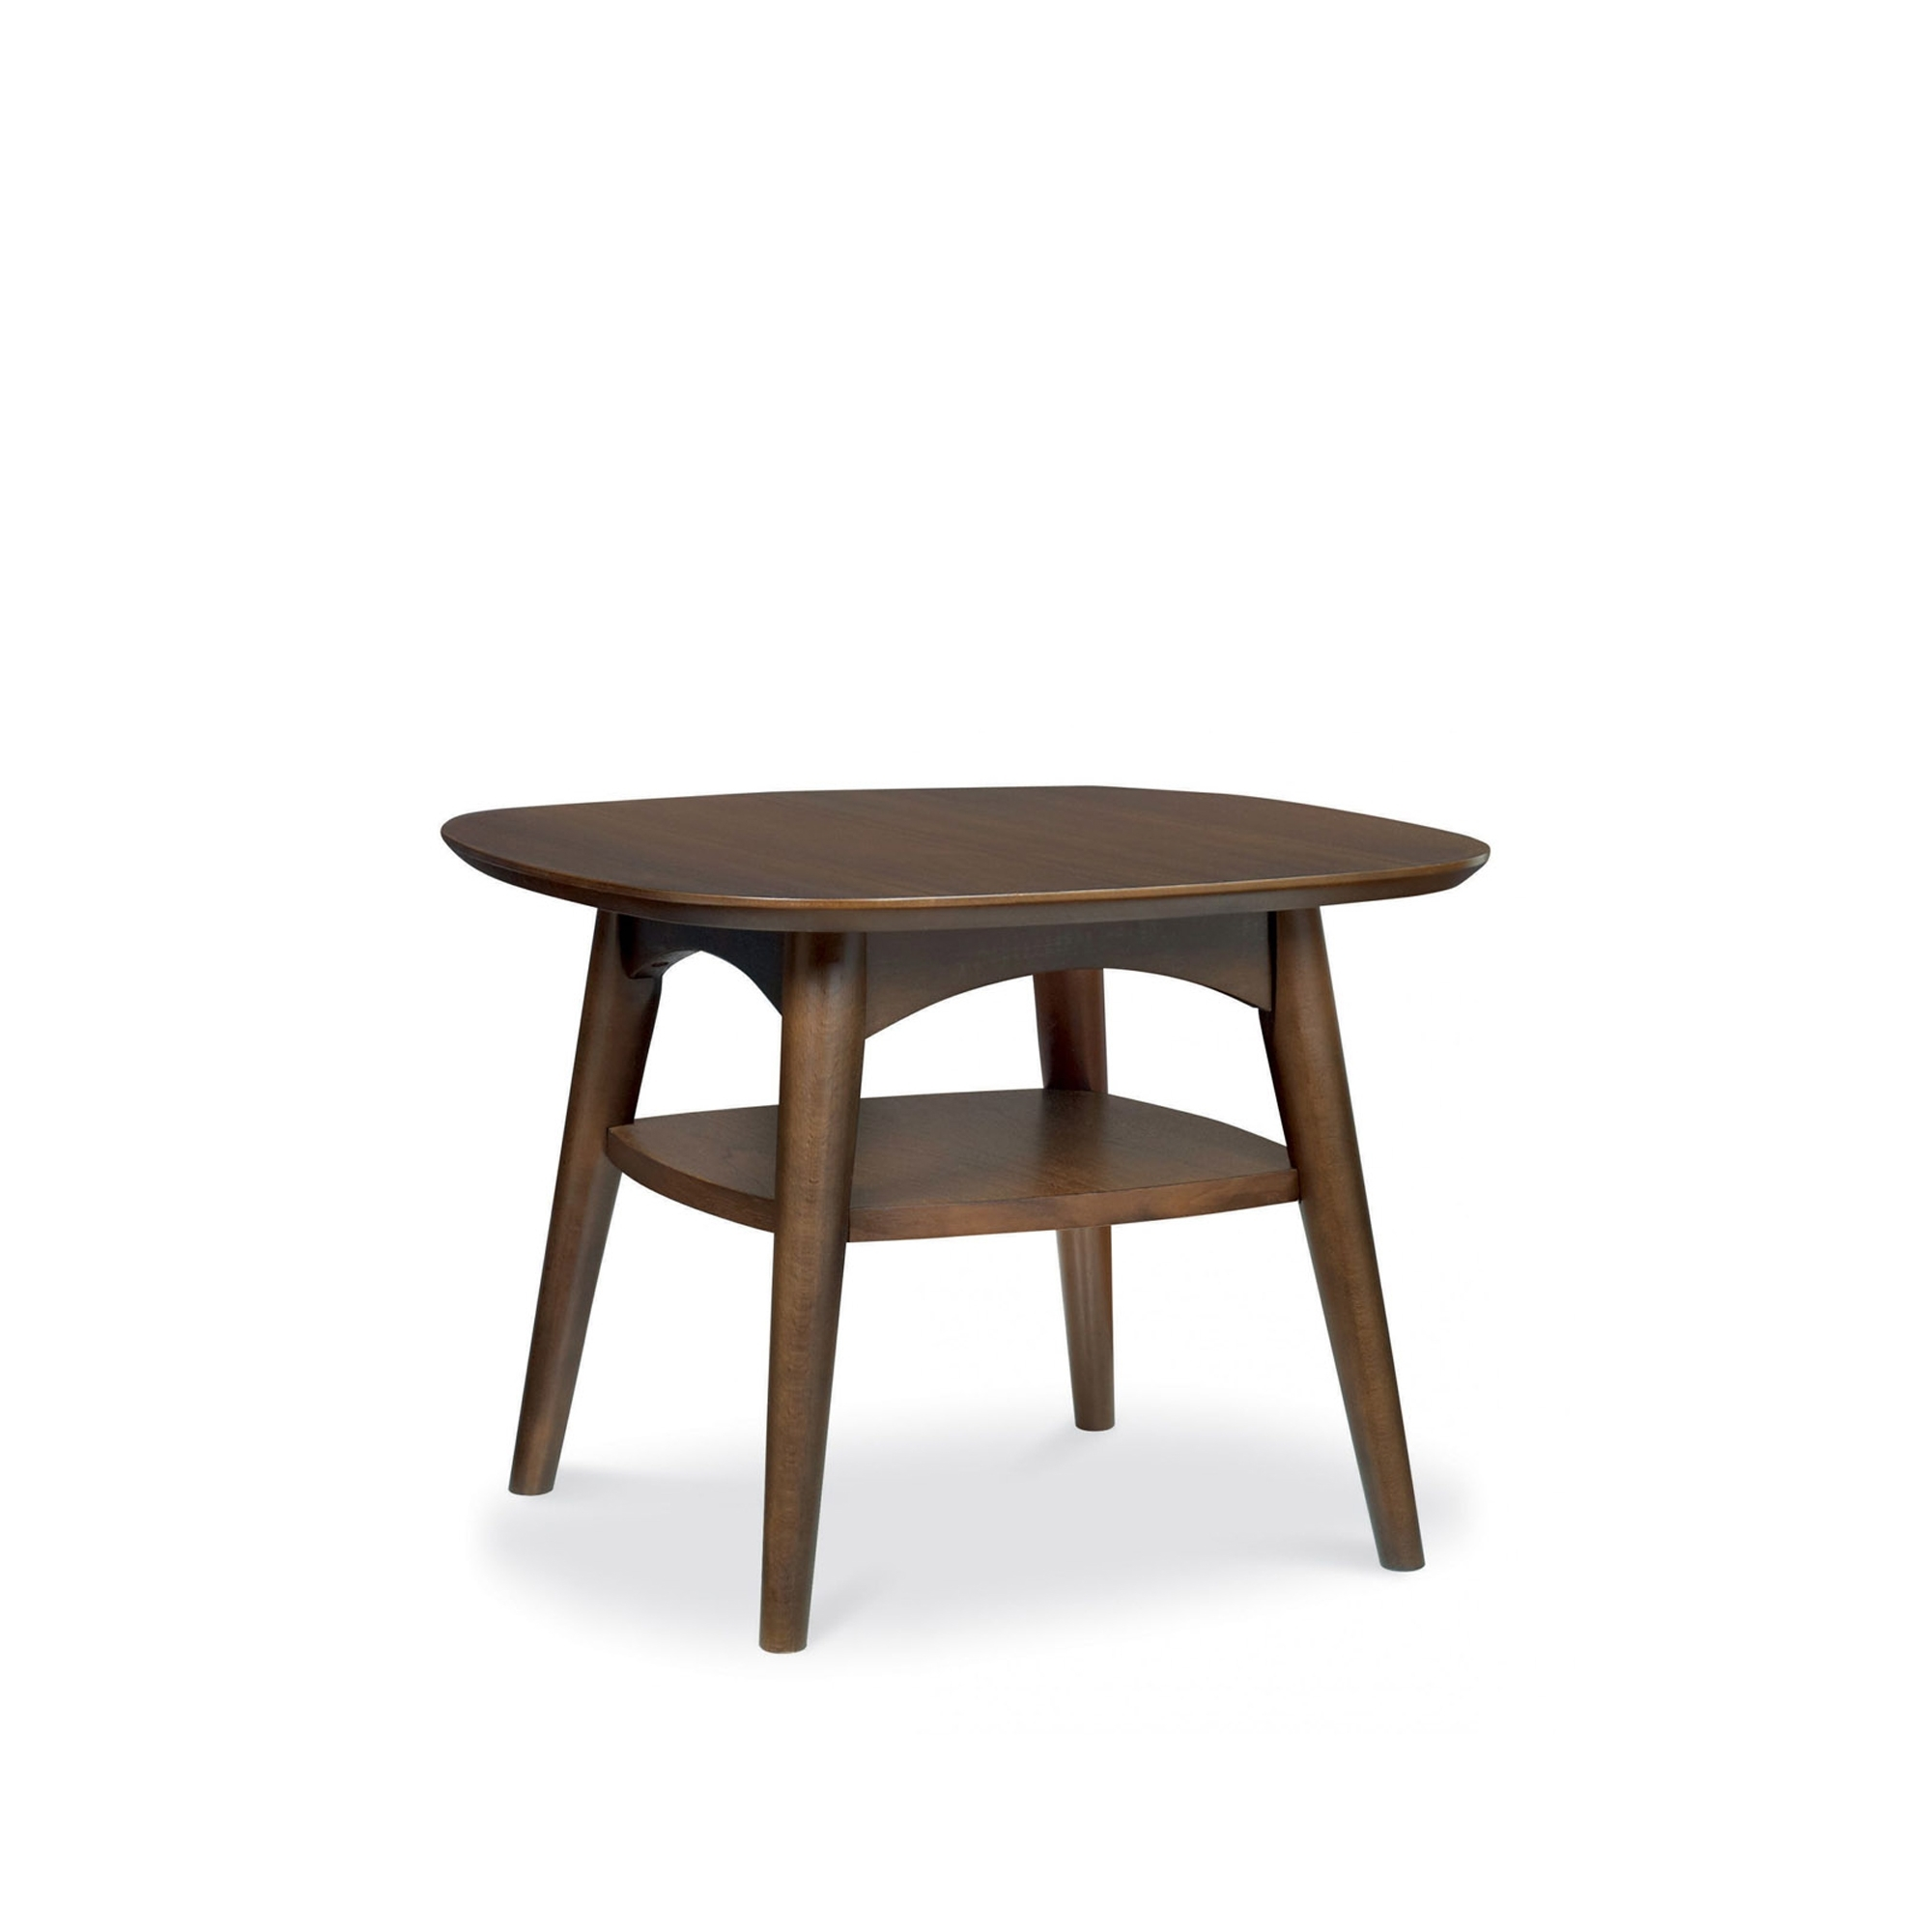 Cookes collection norway walnut lamp table with shelf dining cookes collection norway walnut lamp table with shelf aloadofball Images